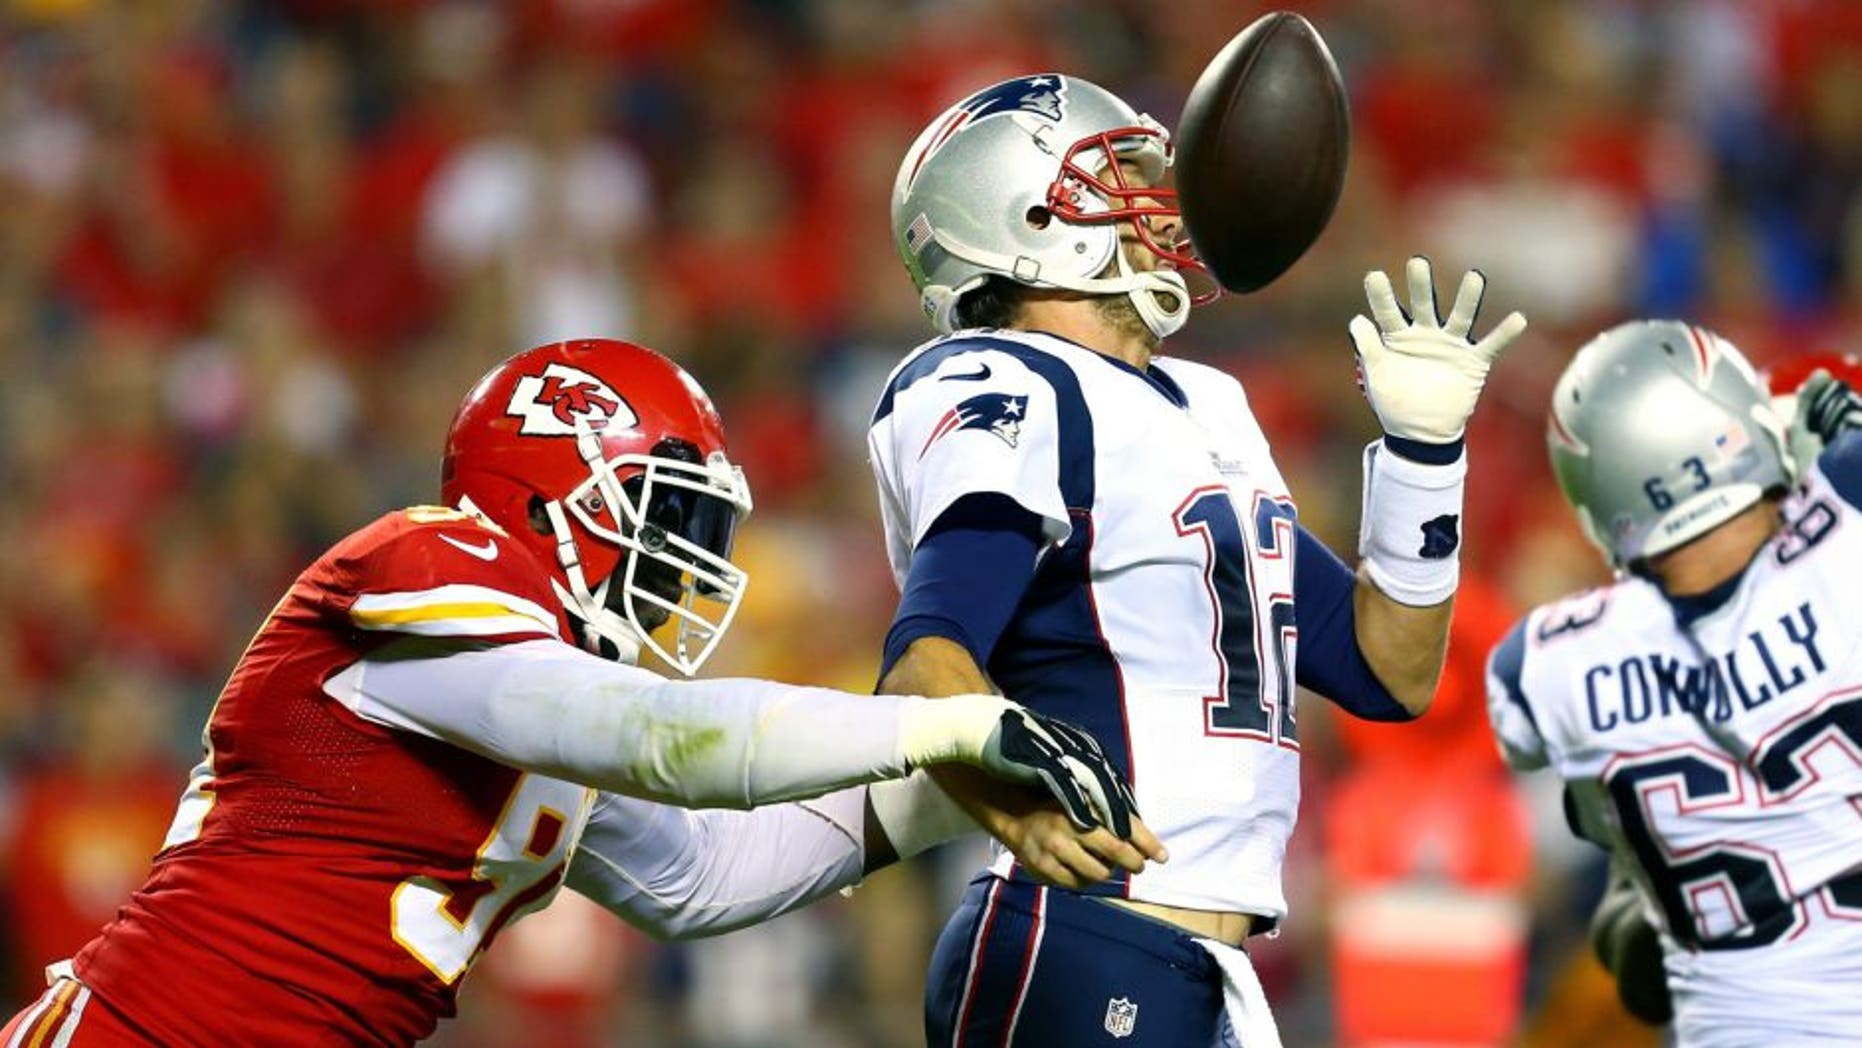 KANSAS CITY, MO - SEPTEMBER 29: Tamba Hali #91 of the Kansas City Chiefs knocks the ball loose from Tom Brady #12 of the New England Patriots for a fumble during the third quarter at Arrowhead Stadium on September 29, 2014 in Kansas City, Missouri. (Photo by Dilip Vishwanat/Getty Images)